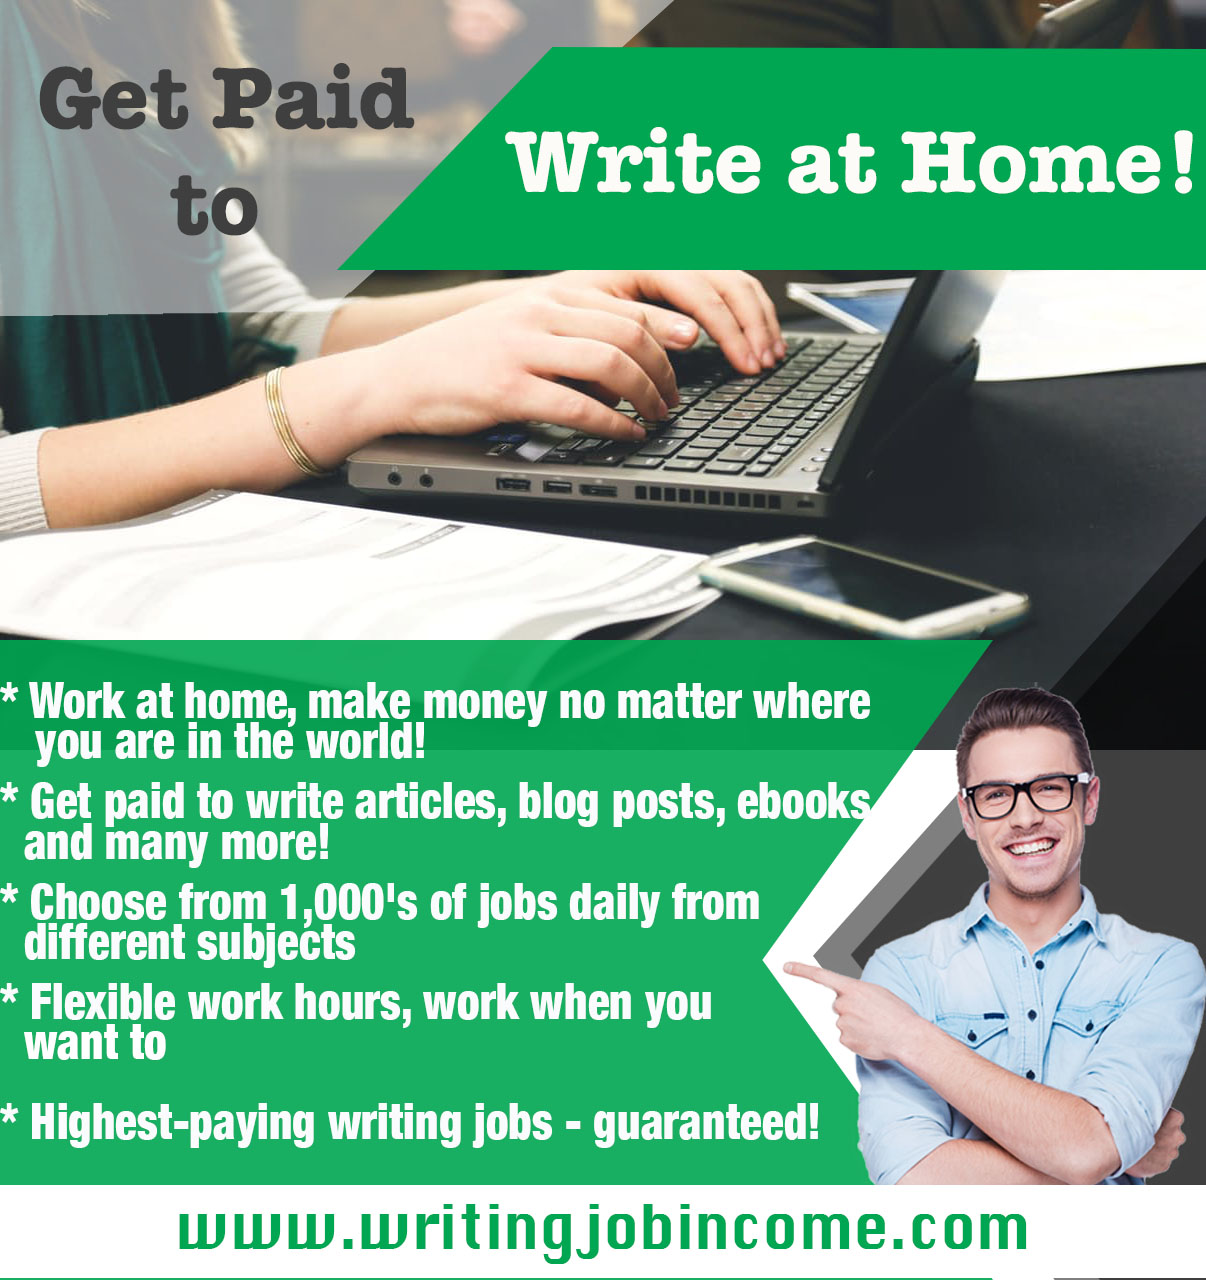 ev tadilatı dekorasyon İşleri 0535 520 9566 anahtar teslim get paid to write articles blog posts ebooks and many more choose from 1 000 s of jobs daily from